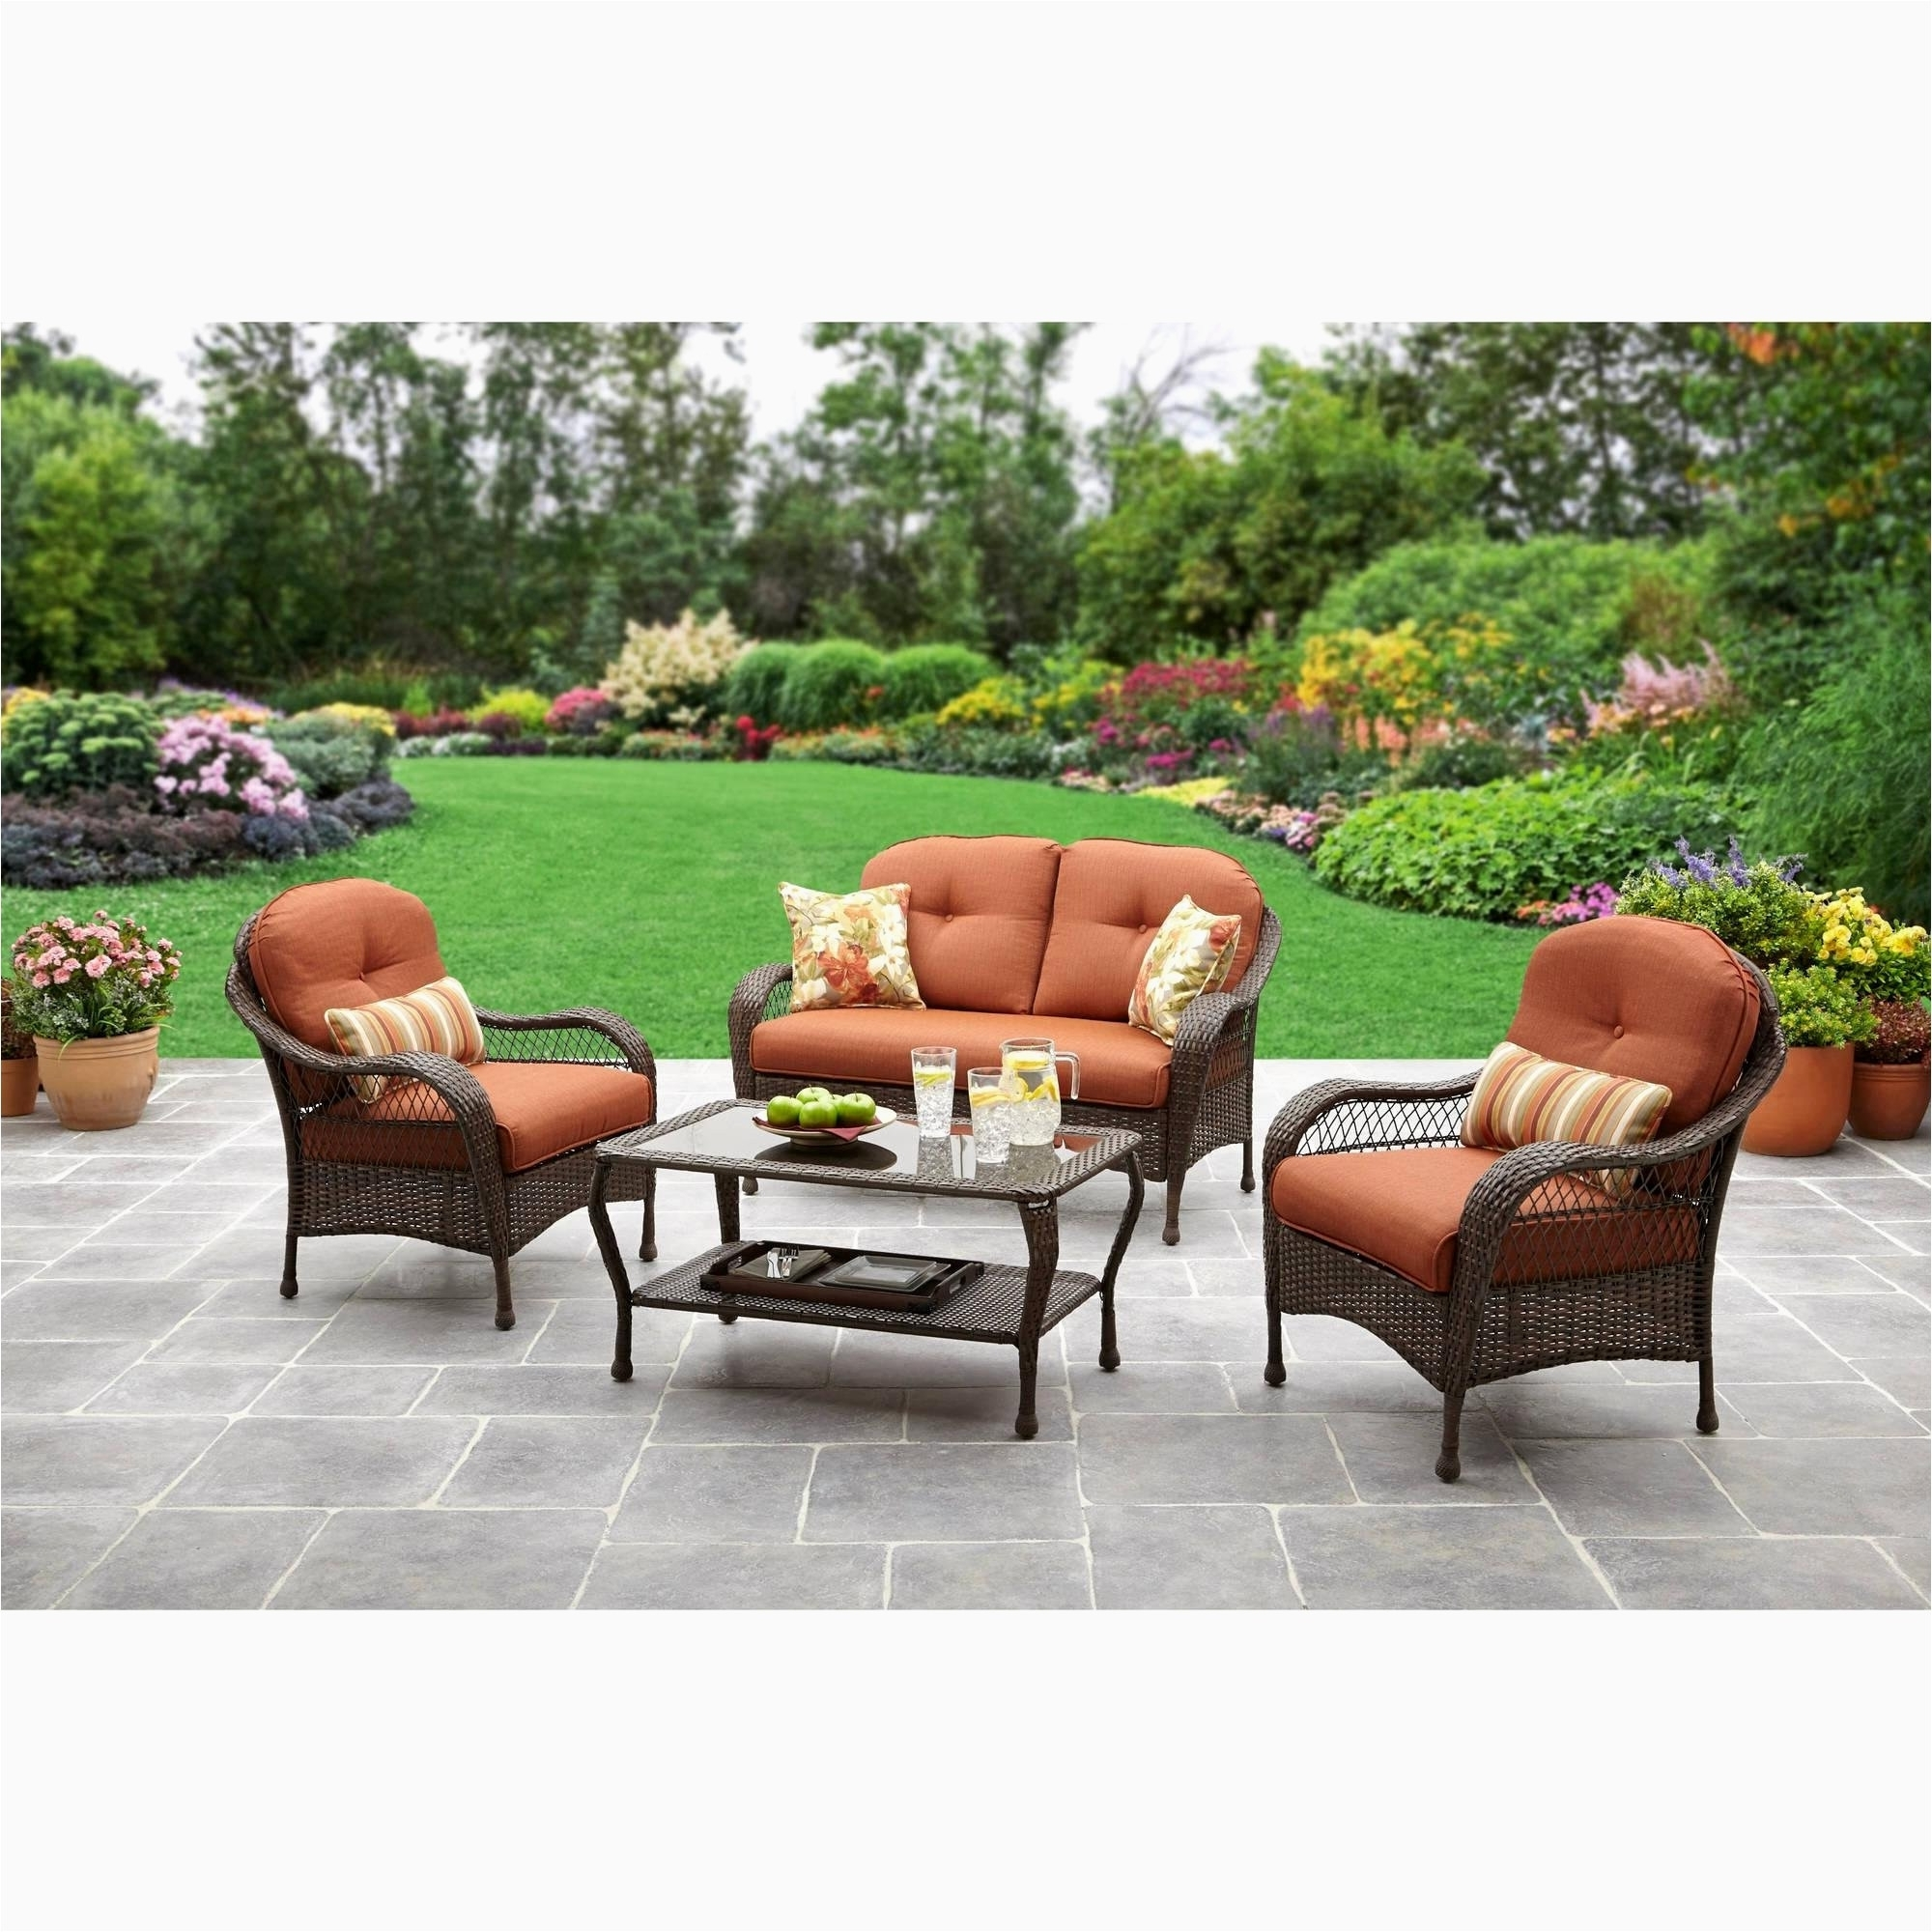 Lowes Patio Furniture Conversation Sets Regarding Most Up To Date Lowes Patio Stones Tags : Patio Furniture Conversation Set Outdoor (View 3 of 20)